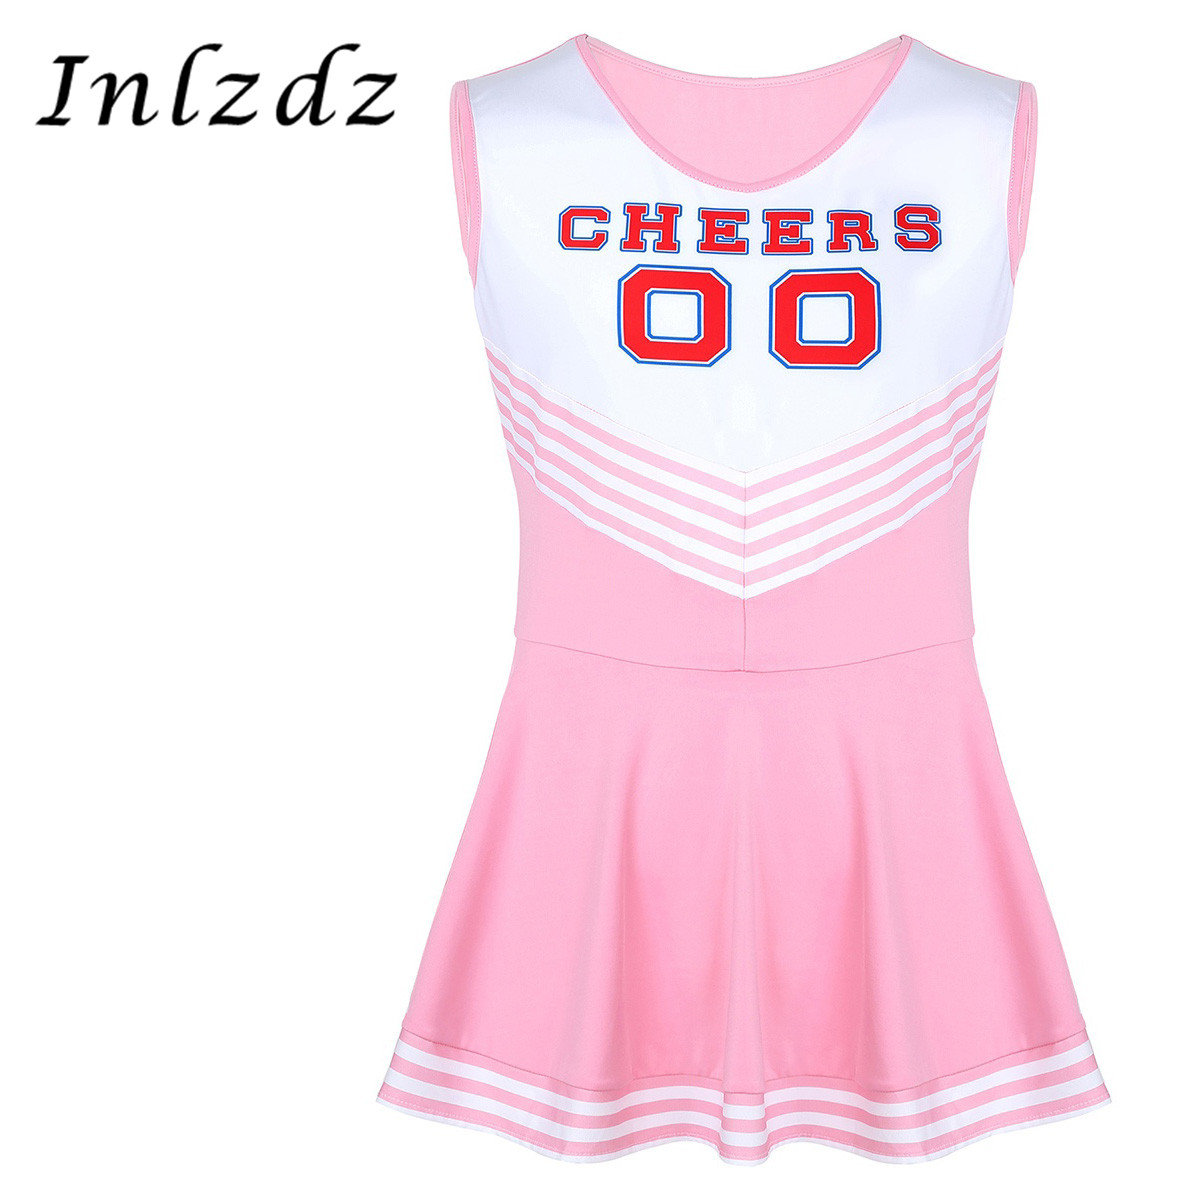 Mens Sissy Crossdresser Dress Scoop Neck Sleeveless Pleated Short Dress Charming Cheerleader Fancy Cosplay Costume Sex Dress